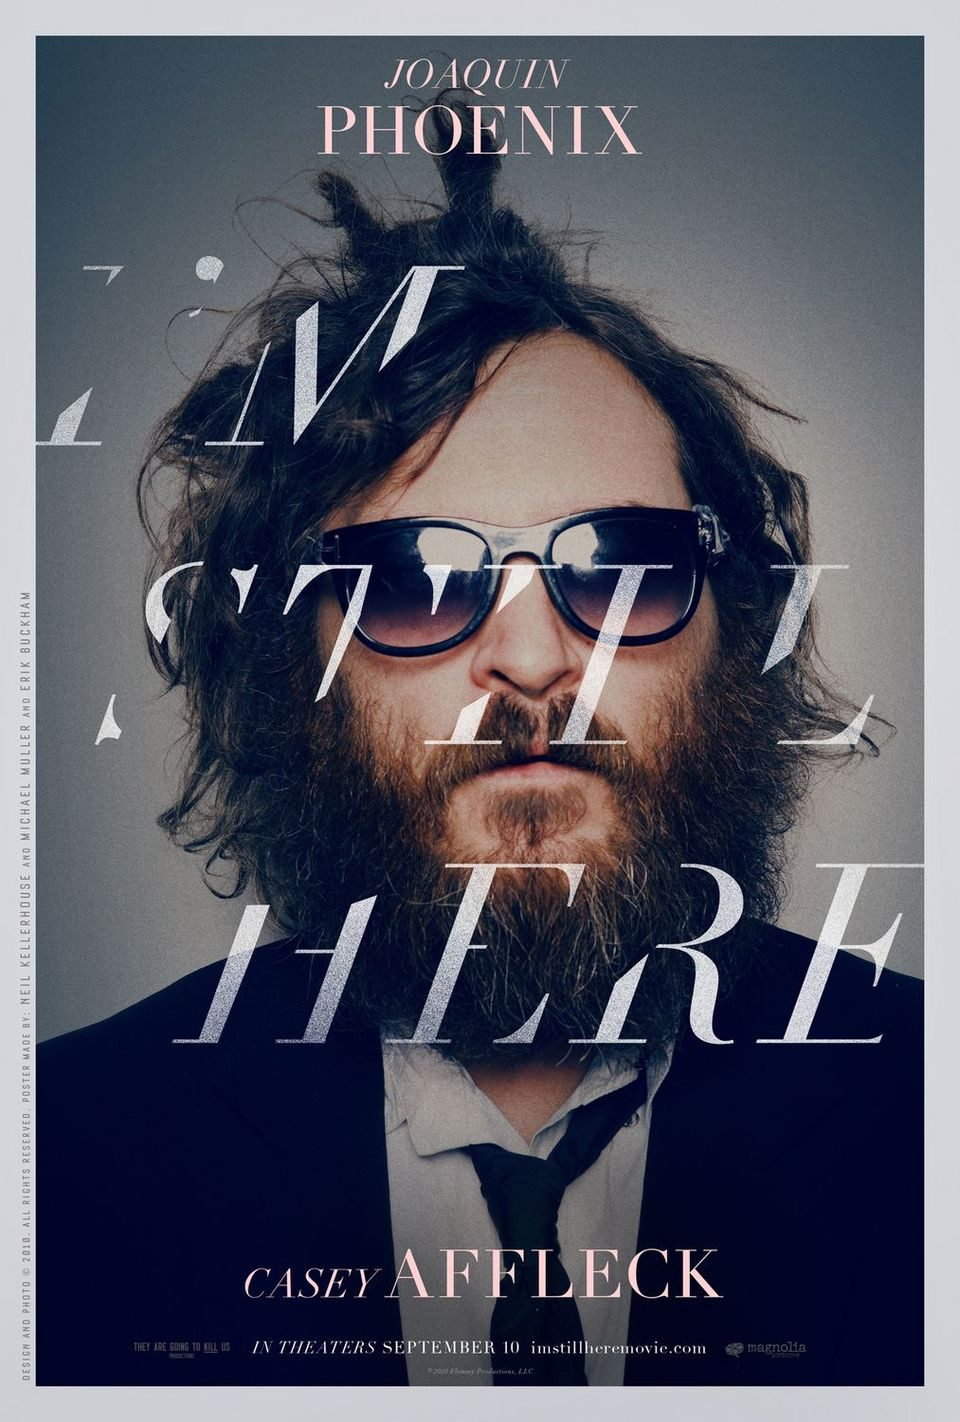 Estados Unidos poster for I'm Still Here: The Lost Years of Joaquin Phoenix